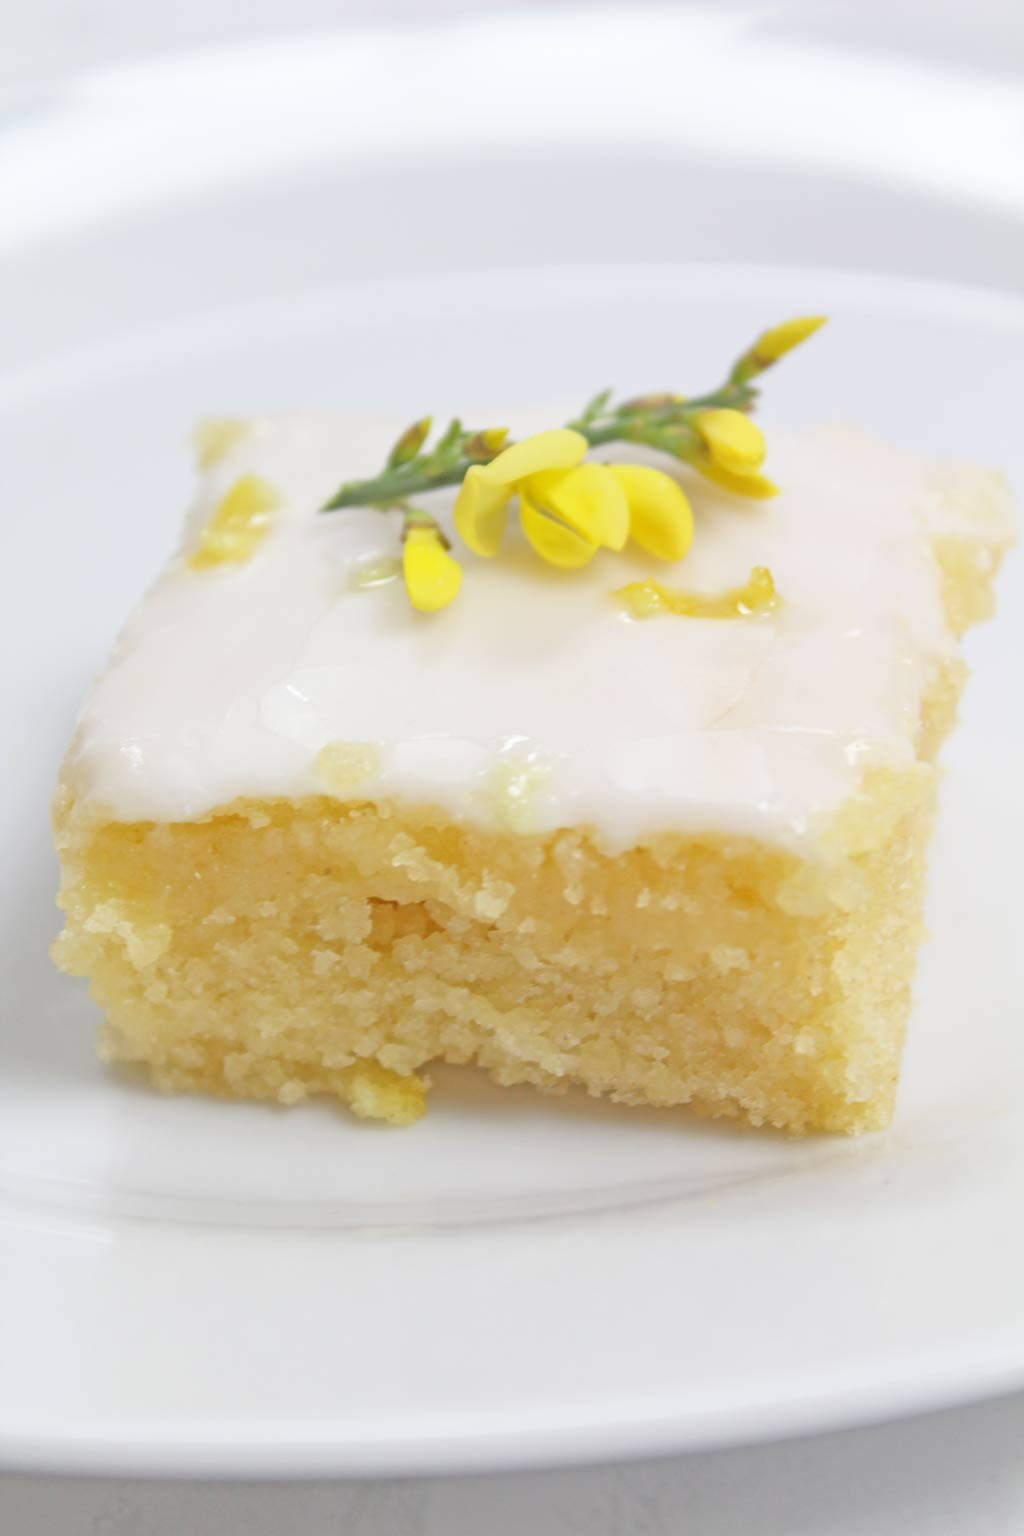 slice of vegan lemon drizzle cake with yellow flower on top